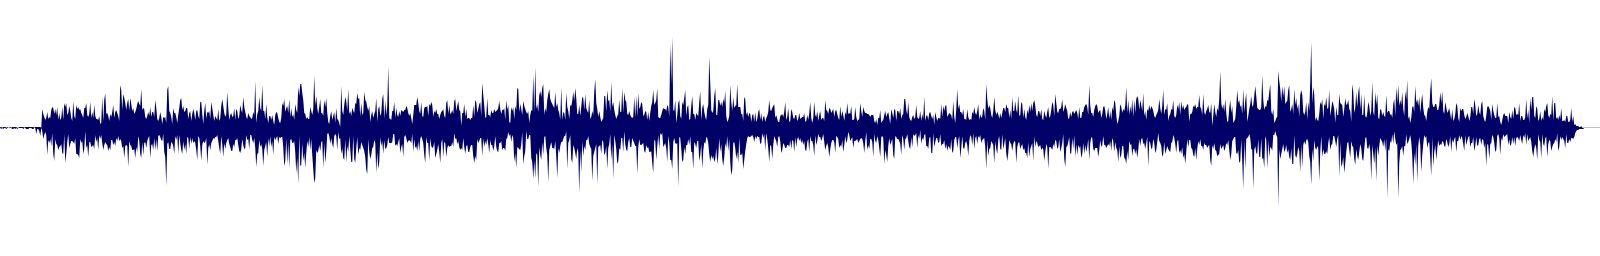 waveform of track #152148